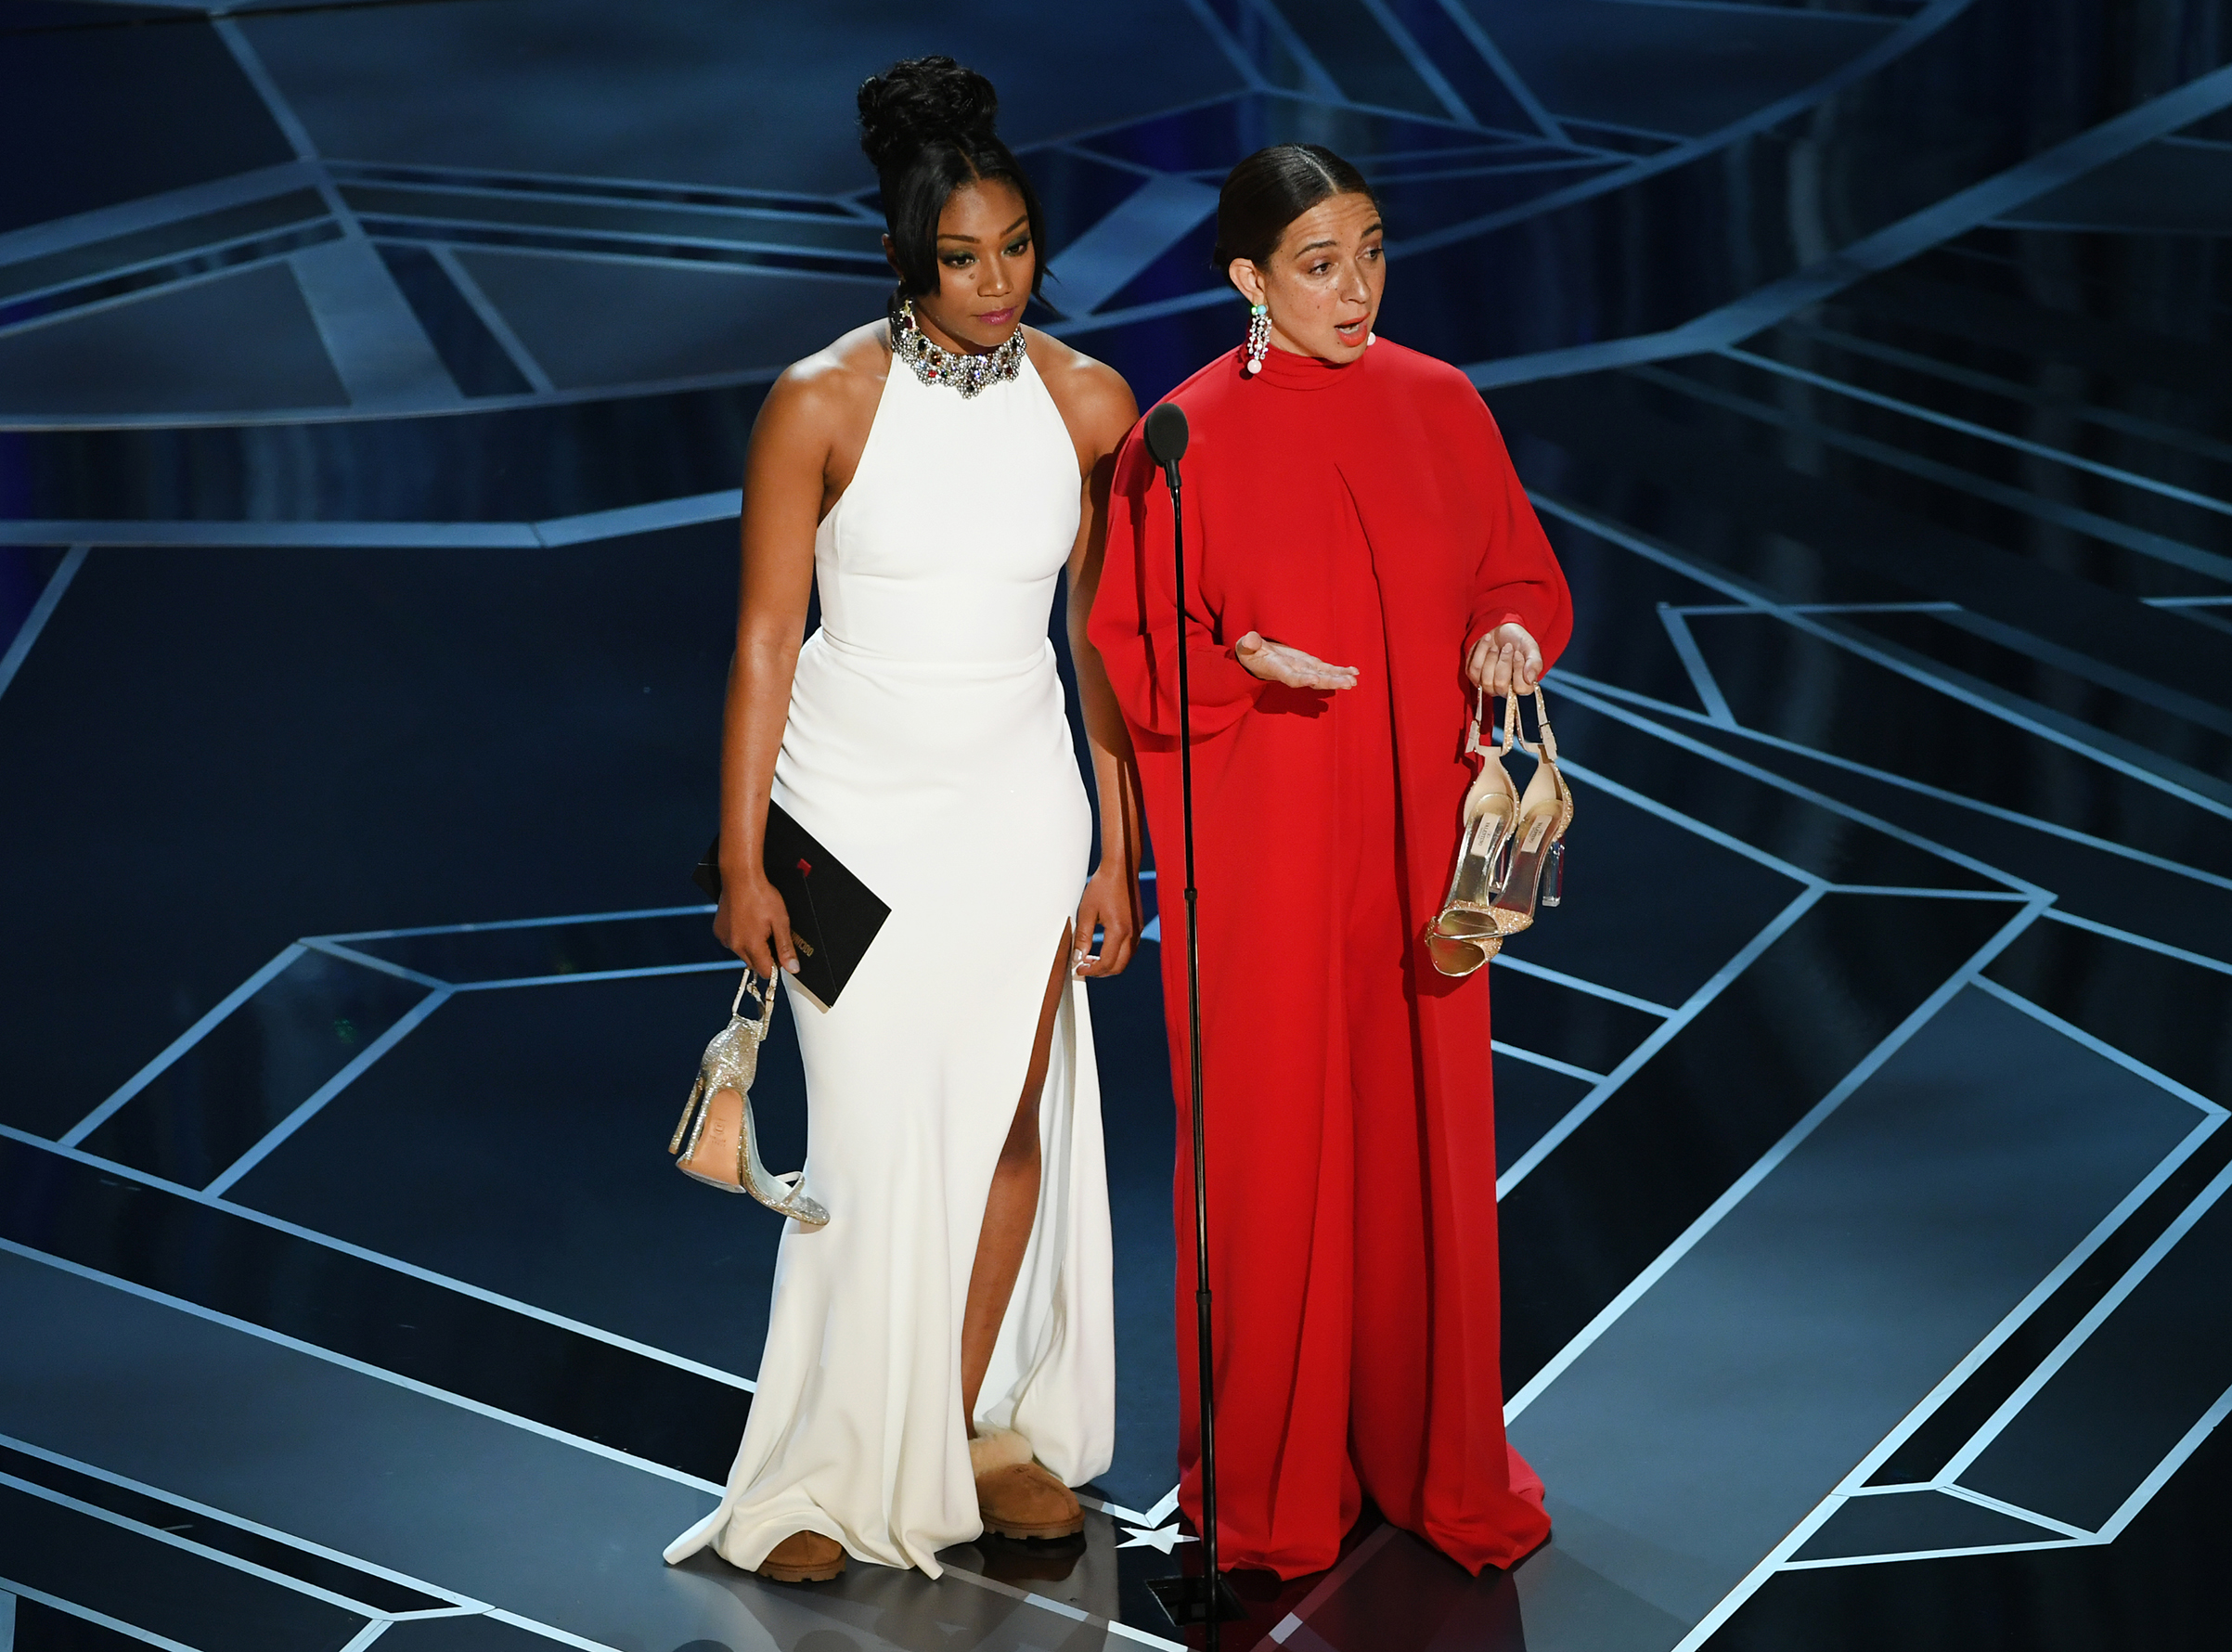 Actors Tiffany Haddish and Maya Rudolph speak onstage during the 90th Annual Academy Awards at the Dolby Theatre at Hollywood & Highland Center on March 4, 2018 in Hollywood.